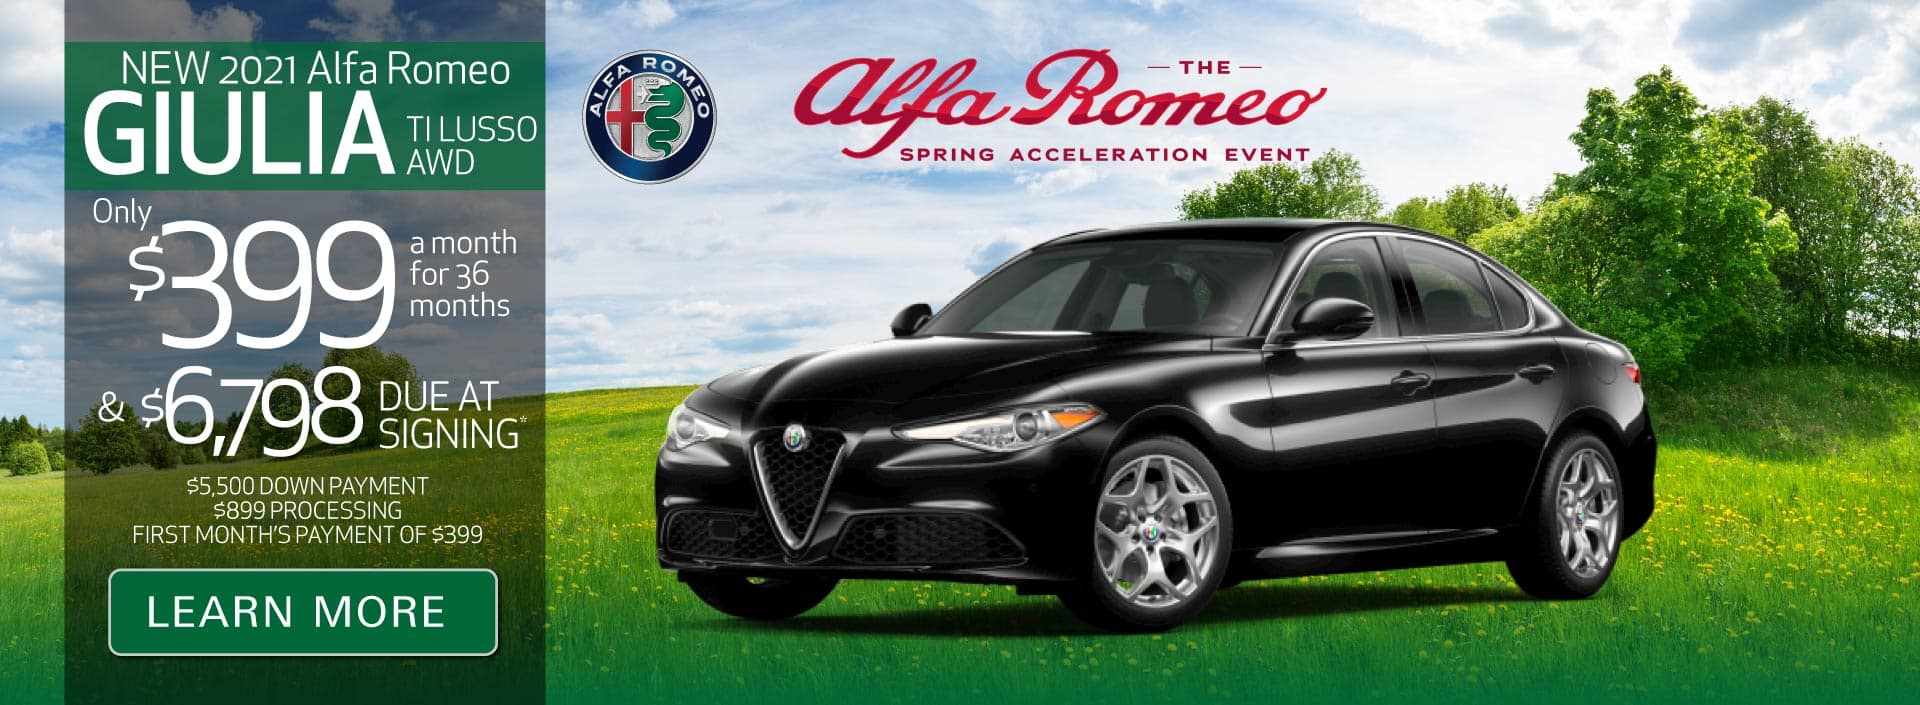 New 2021 Giulia TI Lusso AWD Only $399 a month for 36 months | Learn More